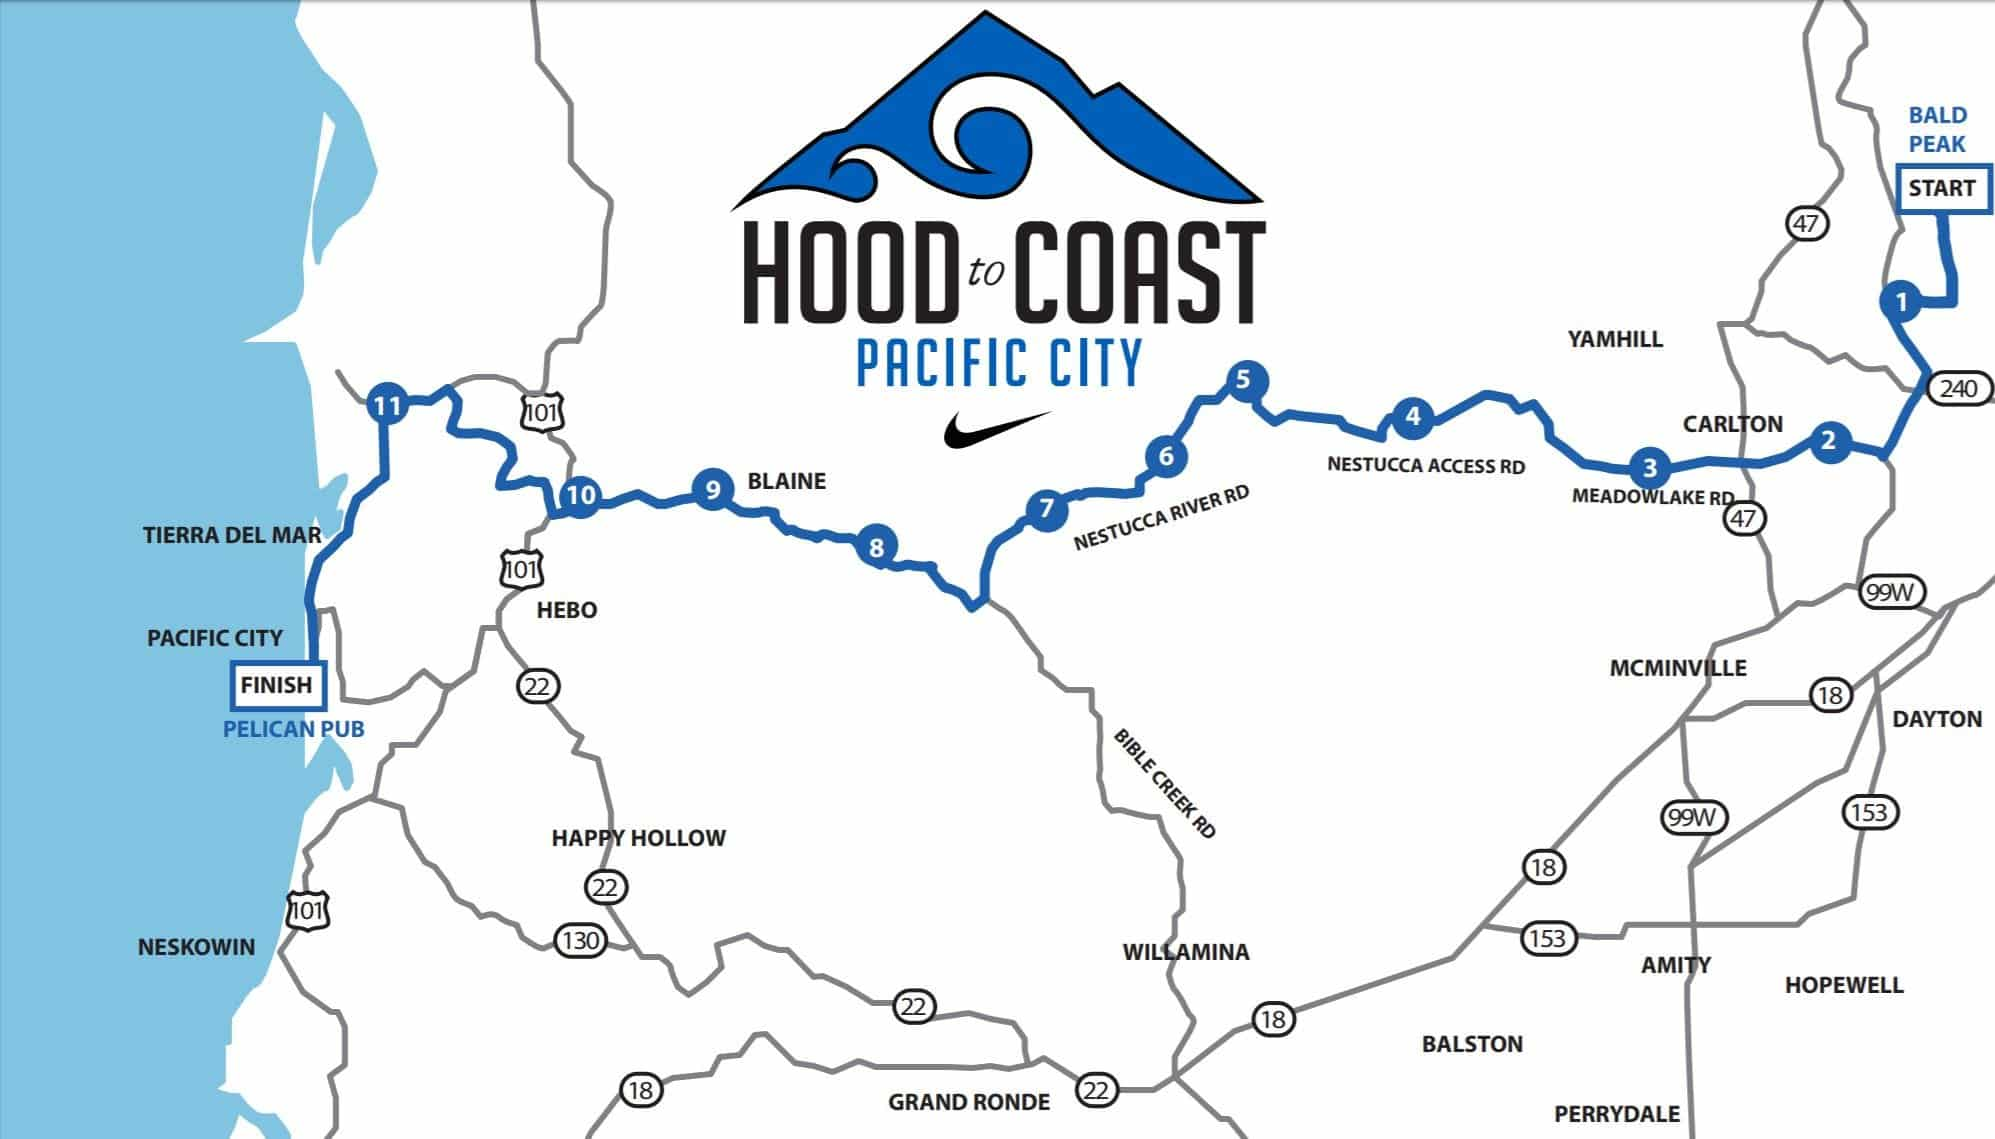 Hood To Coast Pacific City Relay trail and kale